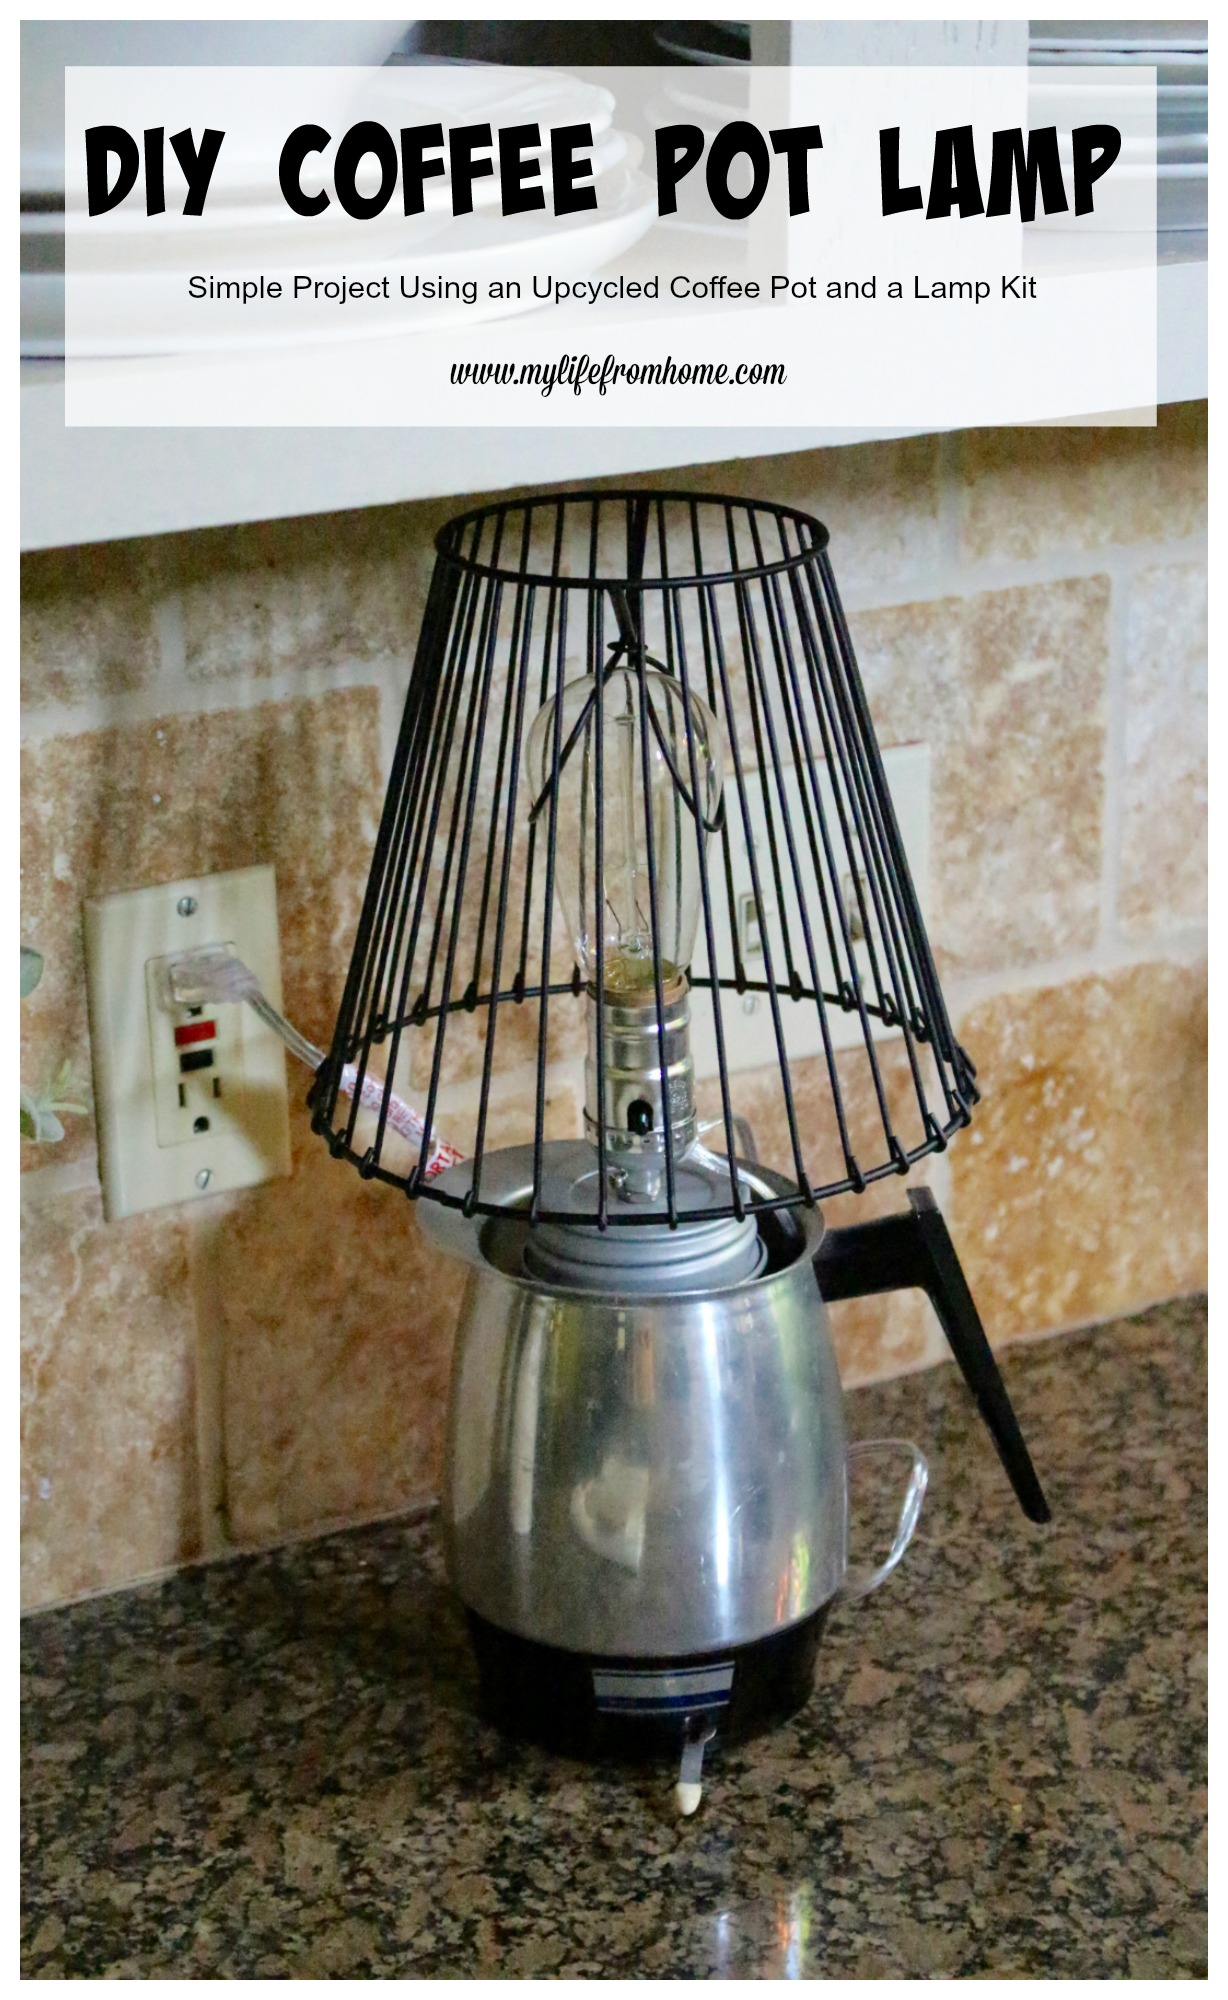 DIY Coffee Pot Lamp by www.mylifefromhome.com